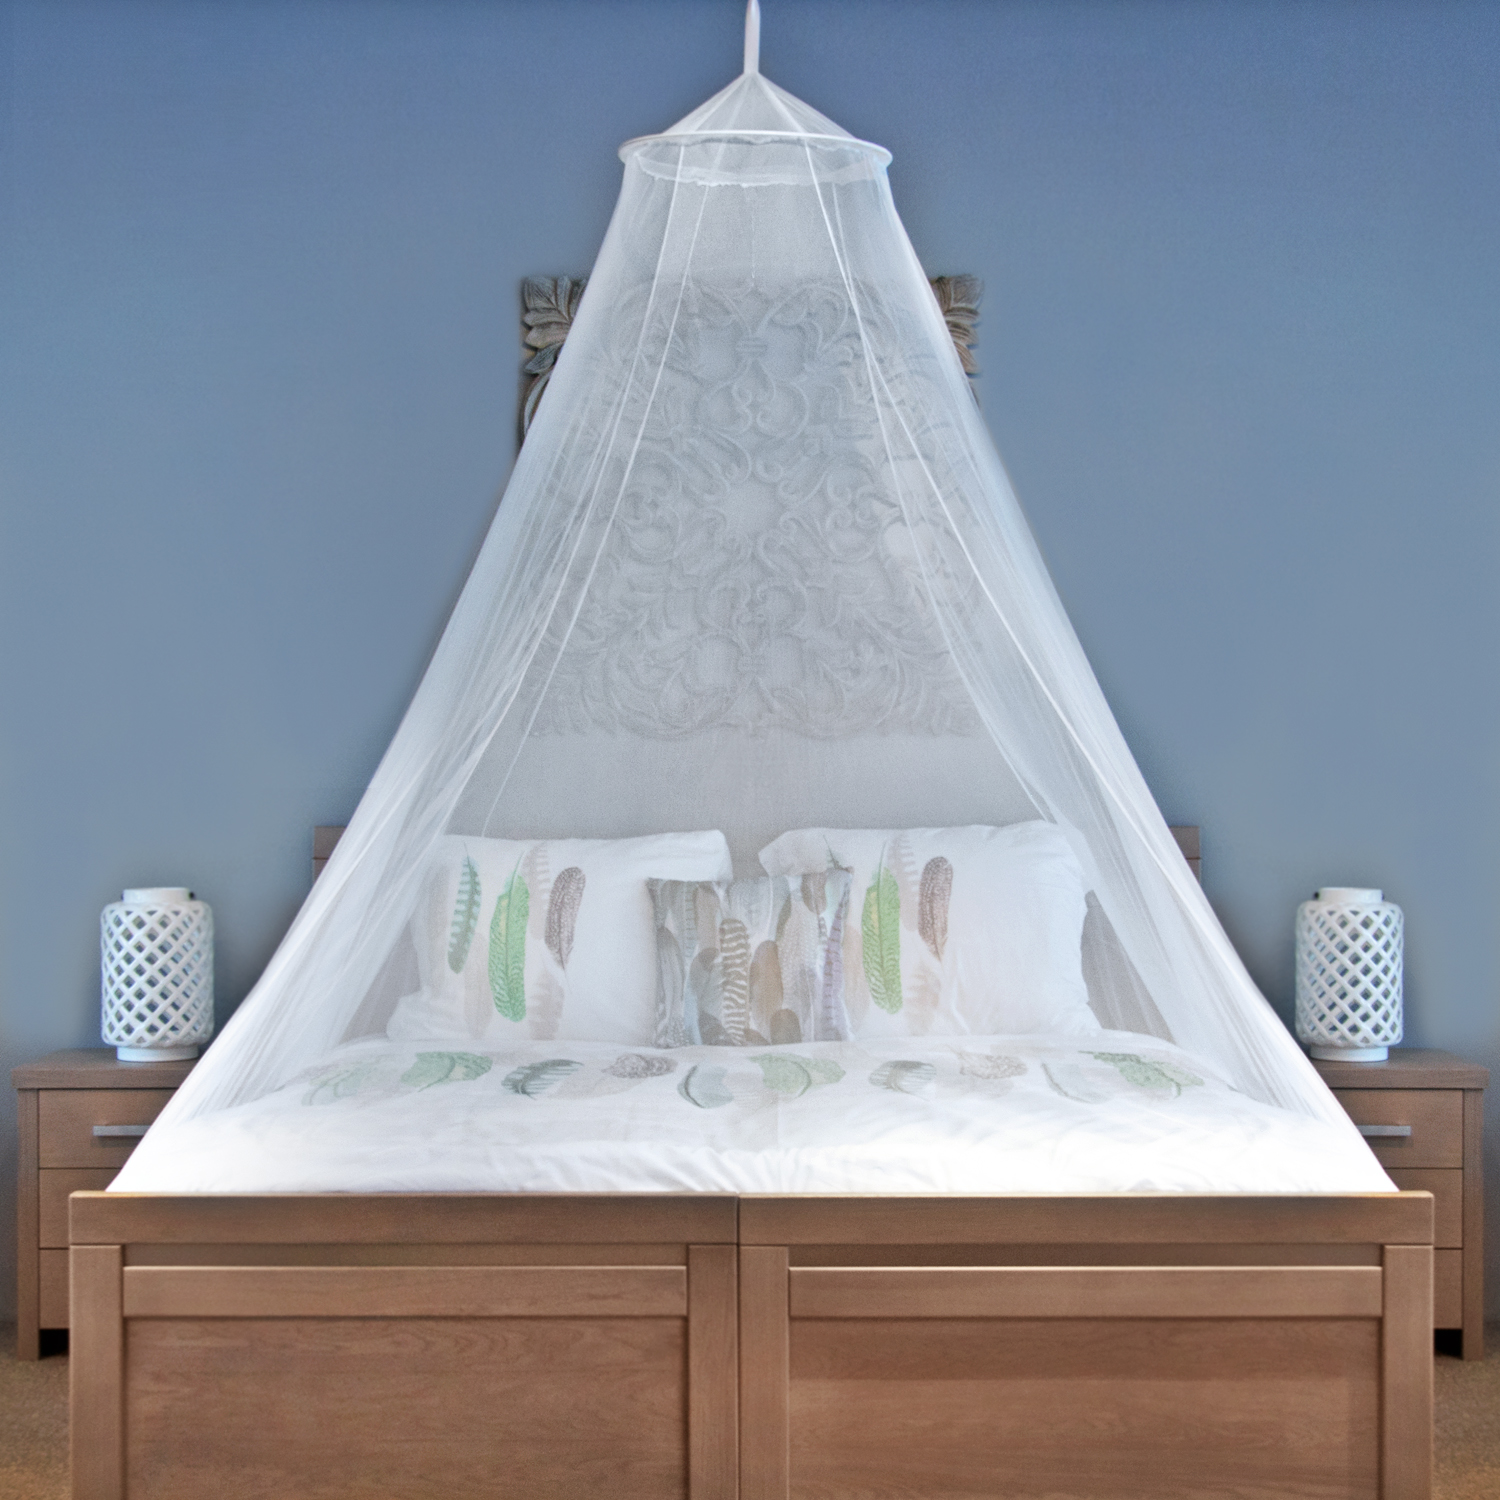 Universal Backpackers King Size Mosquito Net With New Tear